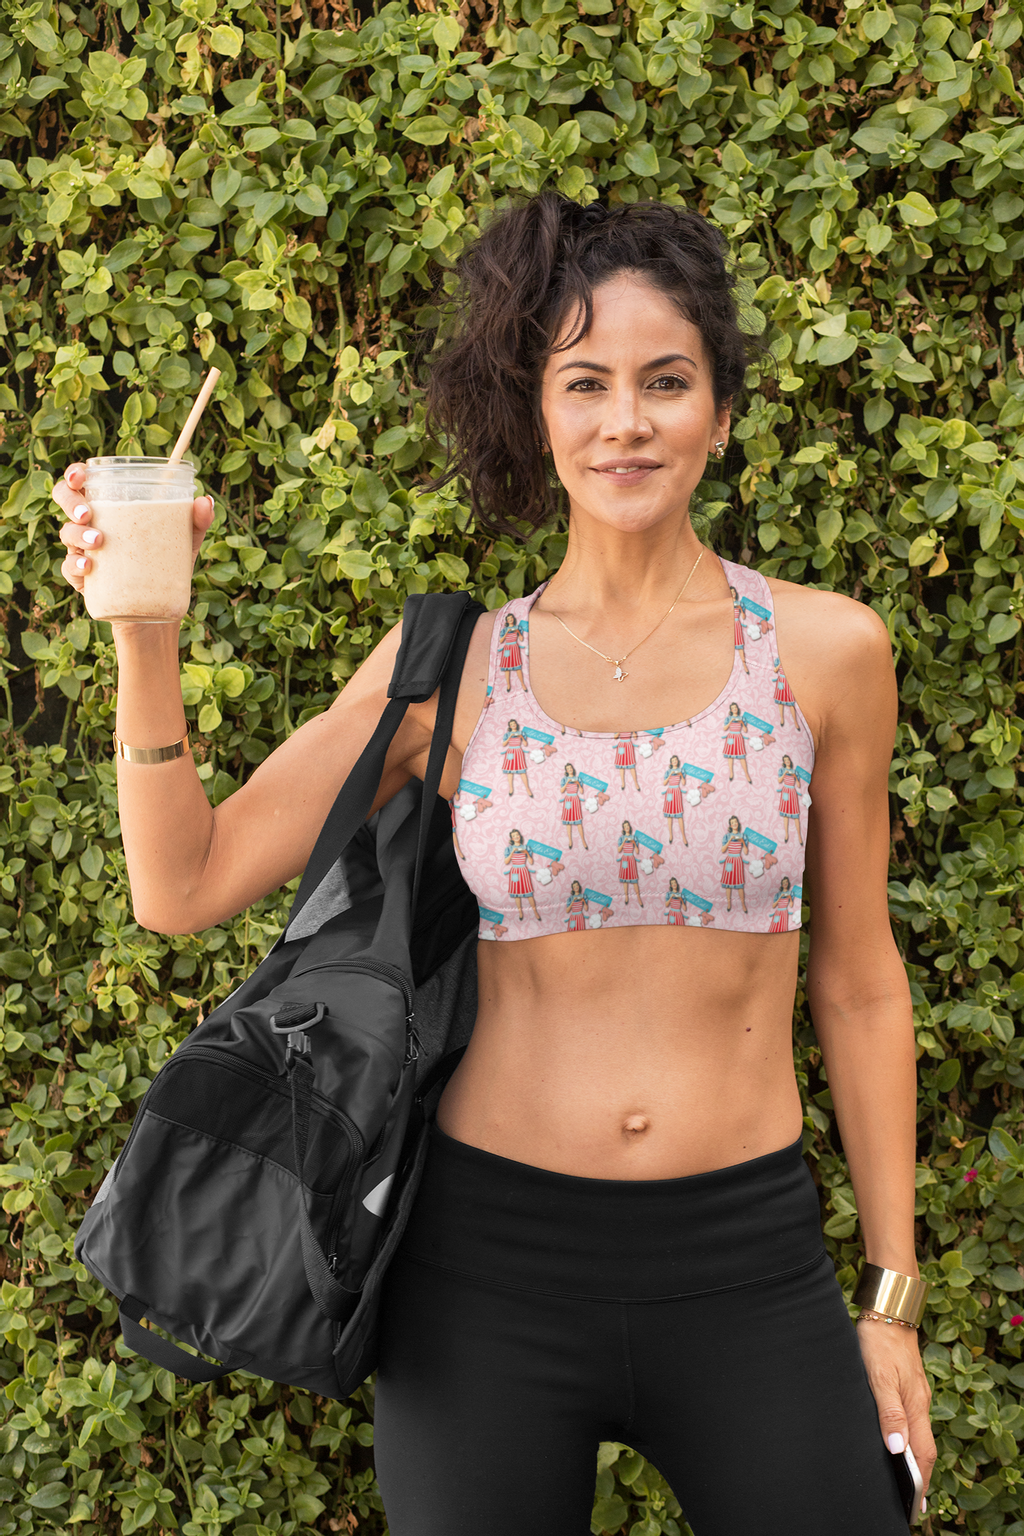 sports-bra-mockup-featuring-a-fit-woman-holding-a-healthy-shake-32782.png